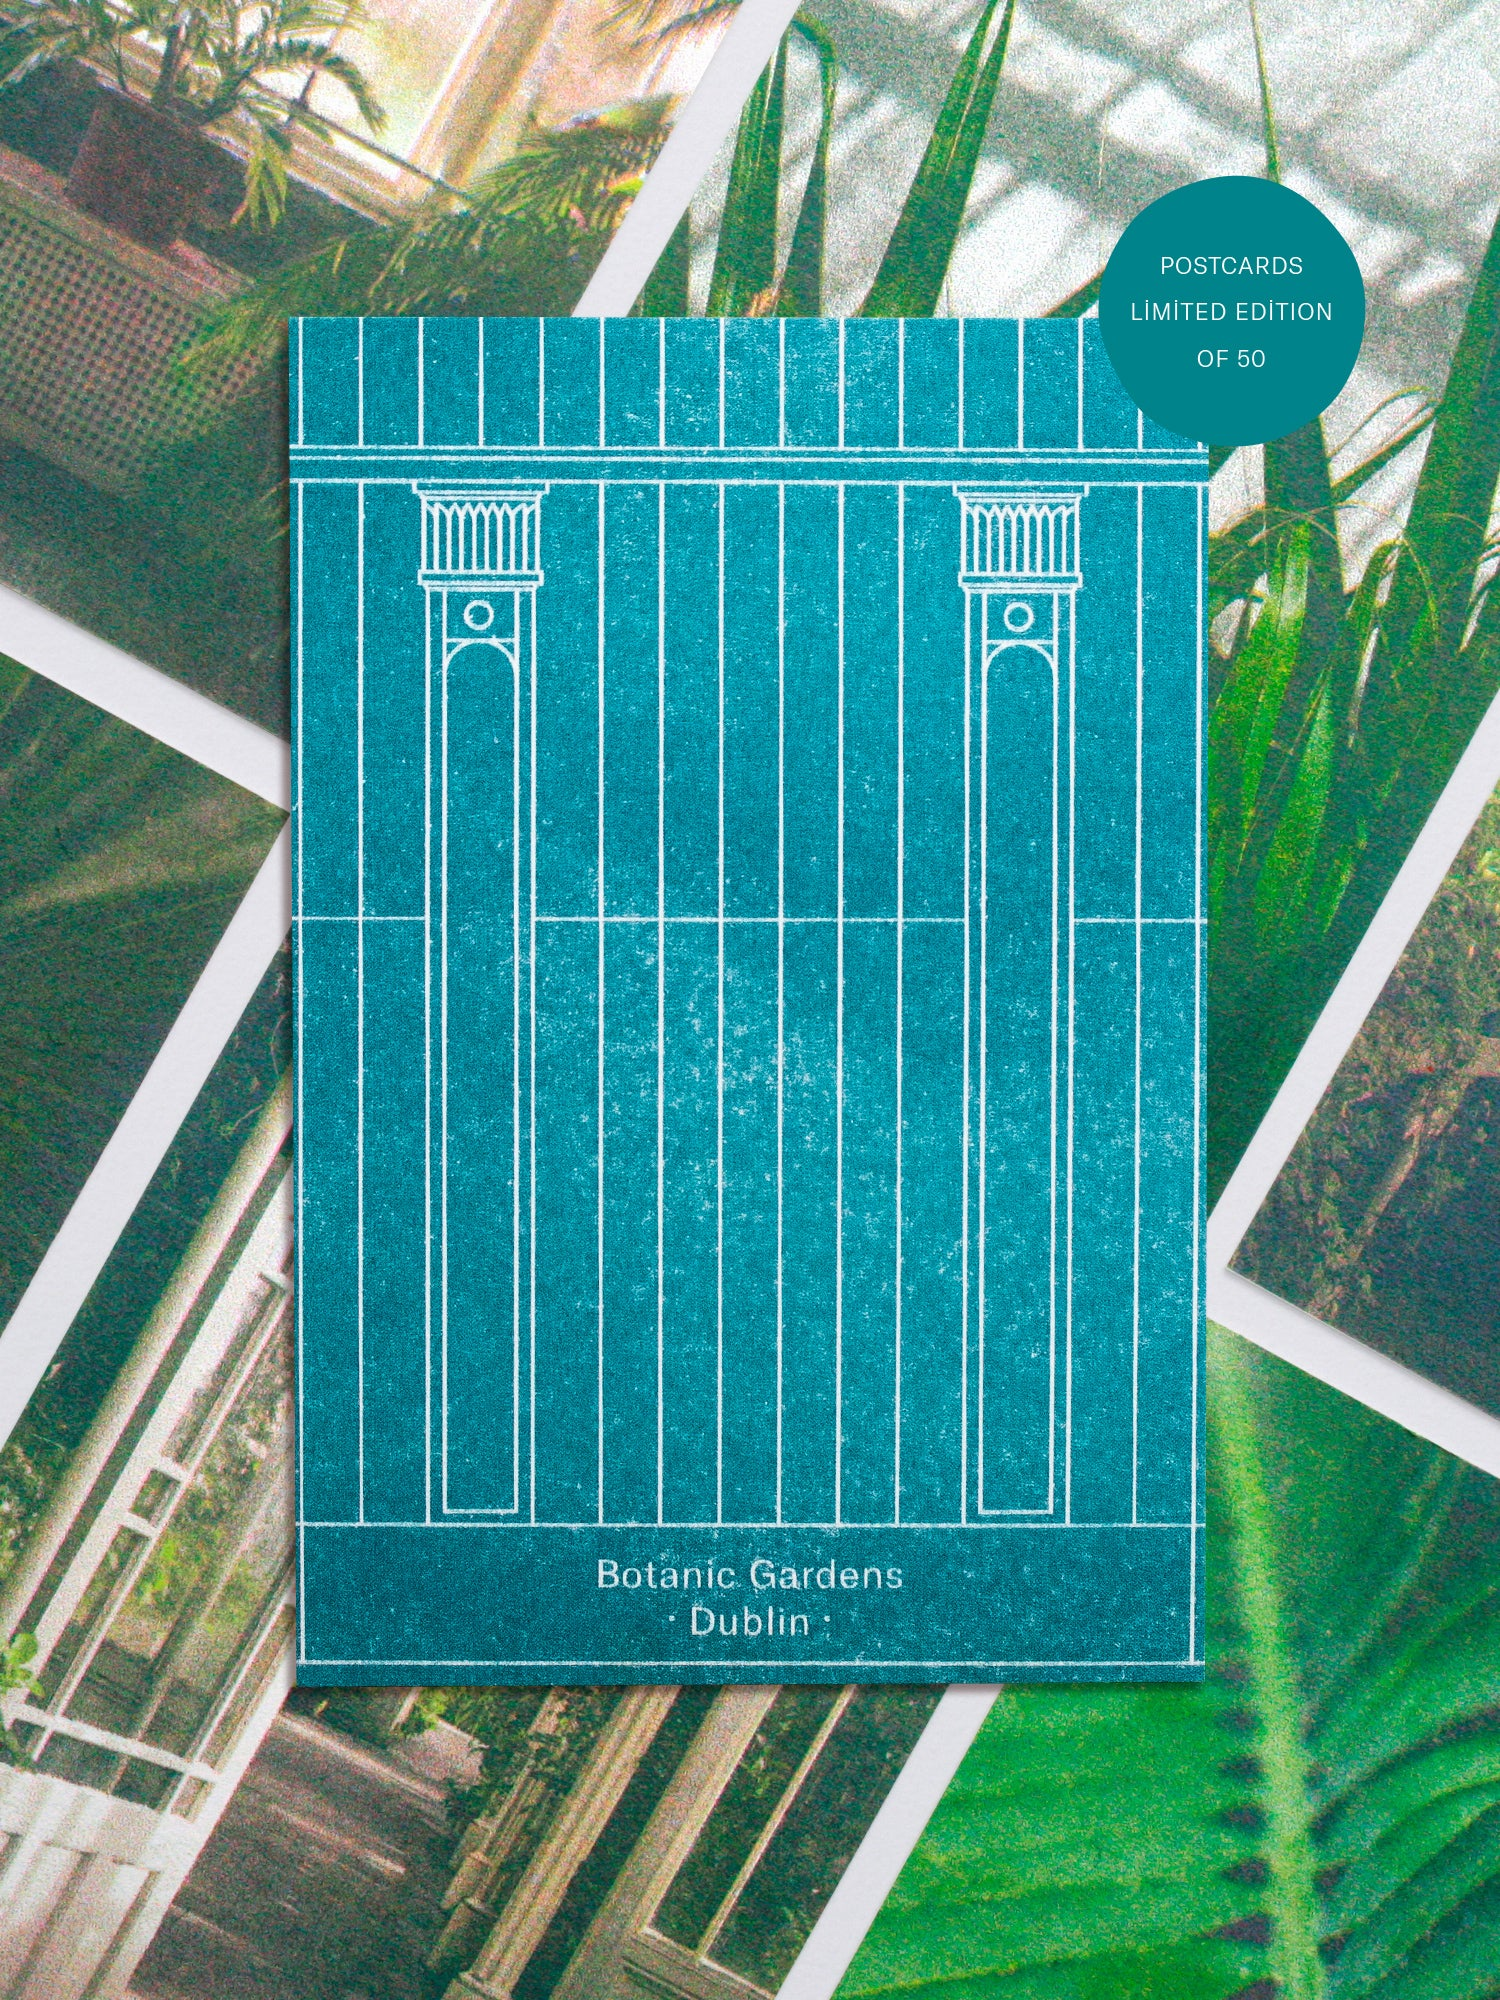 "Postcards featuring an illustration inspired by the architecture of the botanic gardens in Dublin with a label in the top right corner reading ""postcards, limited edition of 50"""